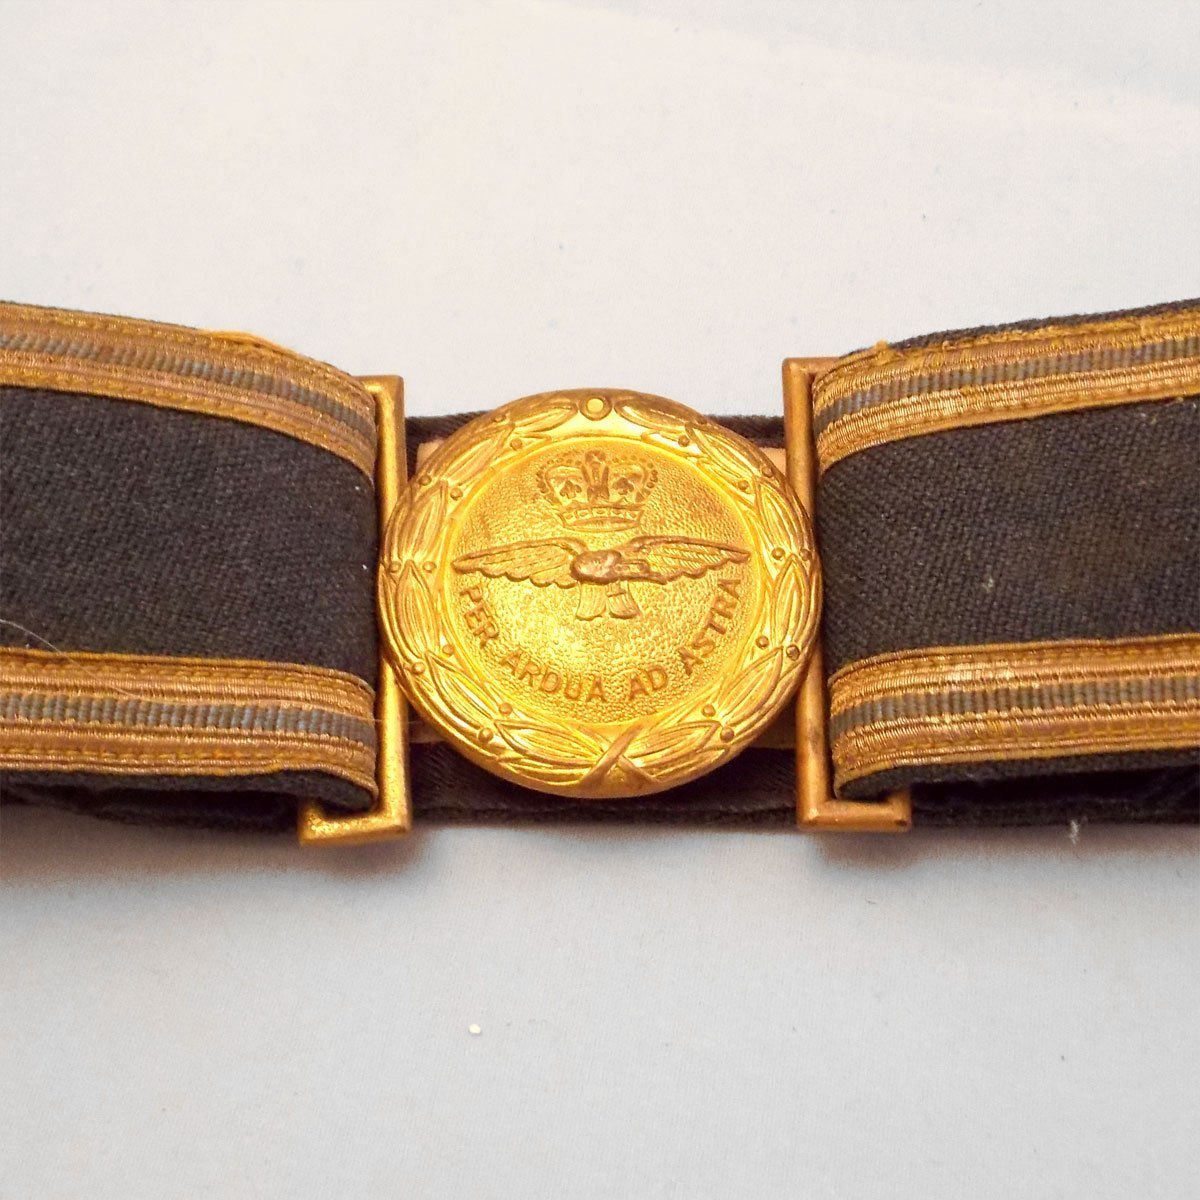 R  A  F  Band Dress Uniform belt with ERII Crown Buckle